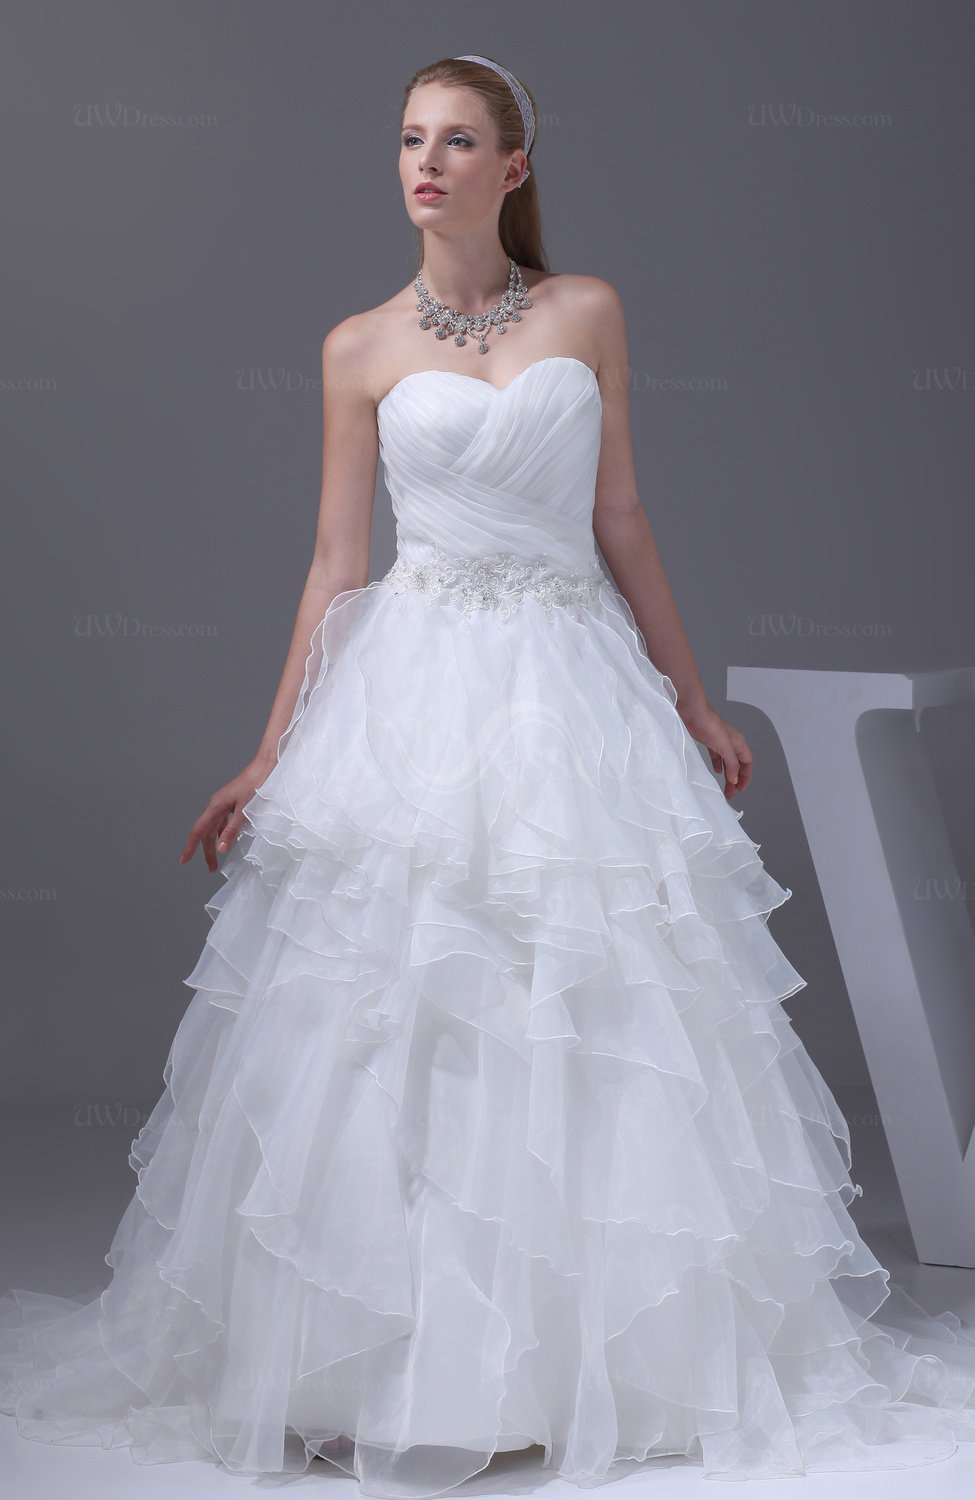 tiered wedding dress white modest garden sleeveless lace up court tiered 7997